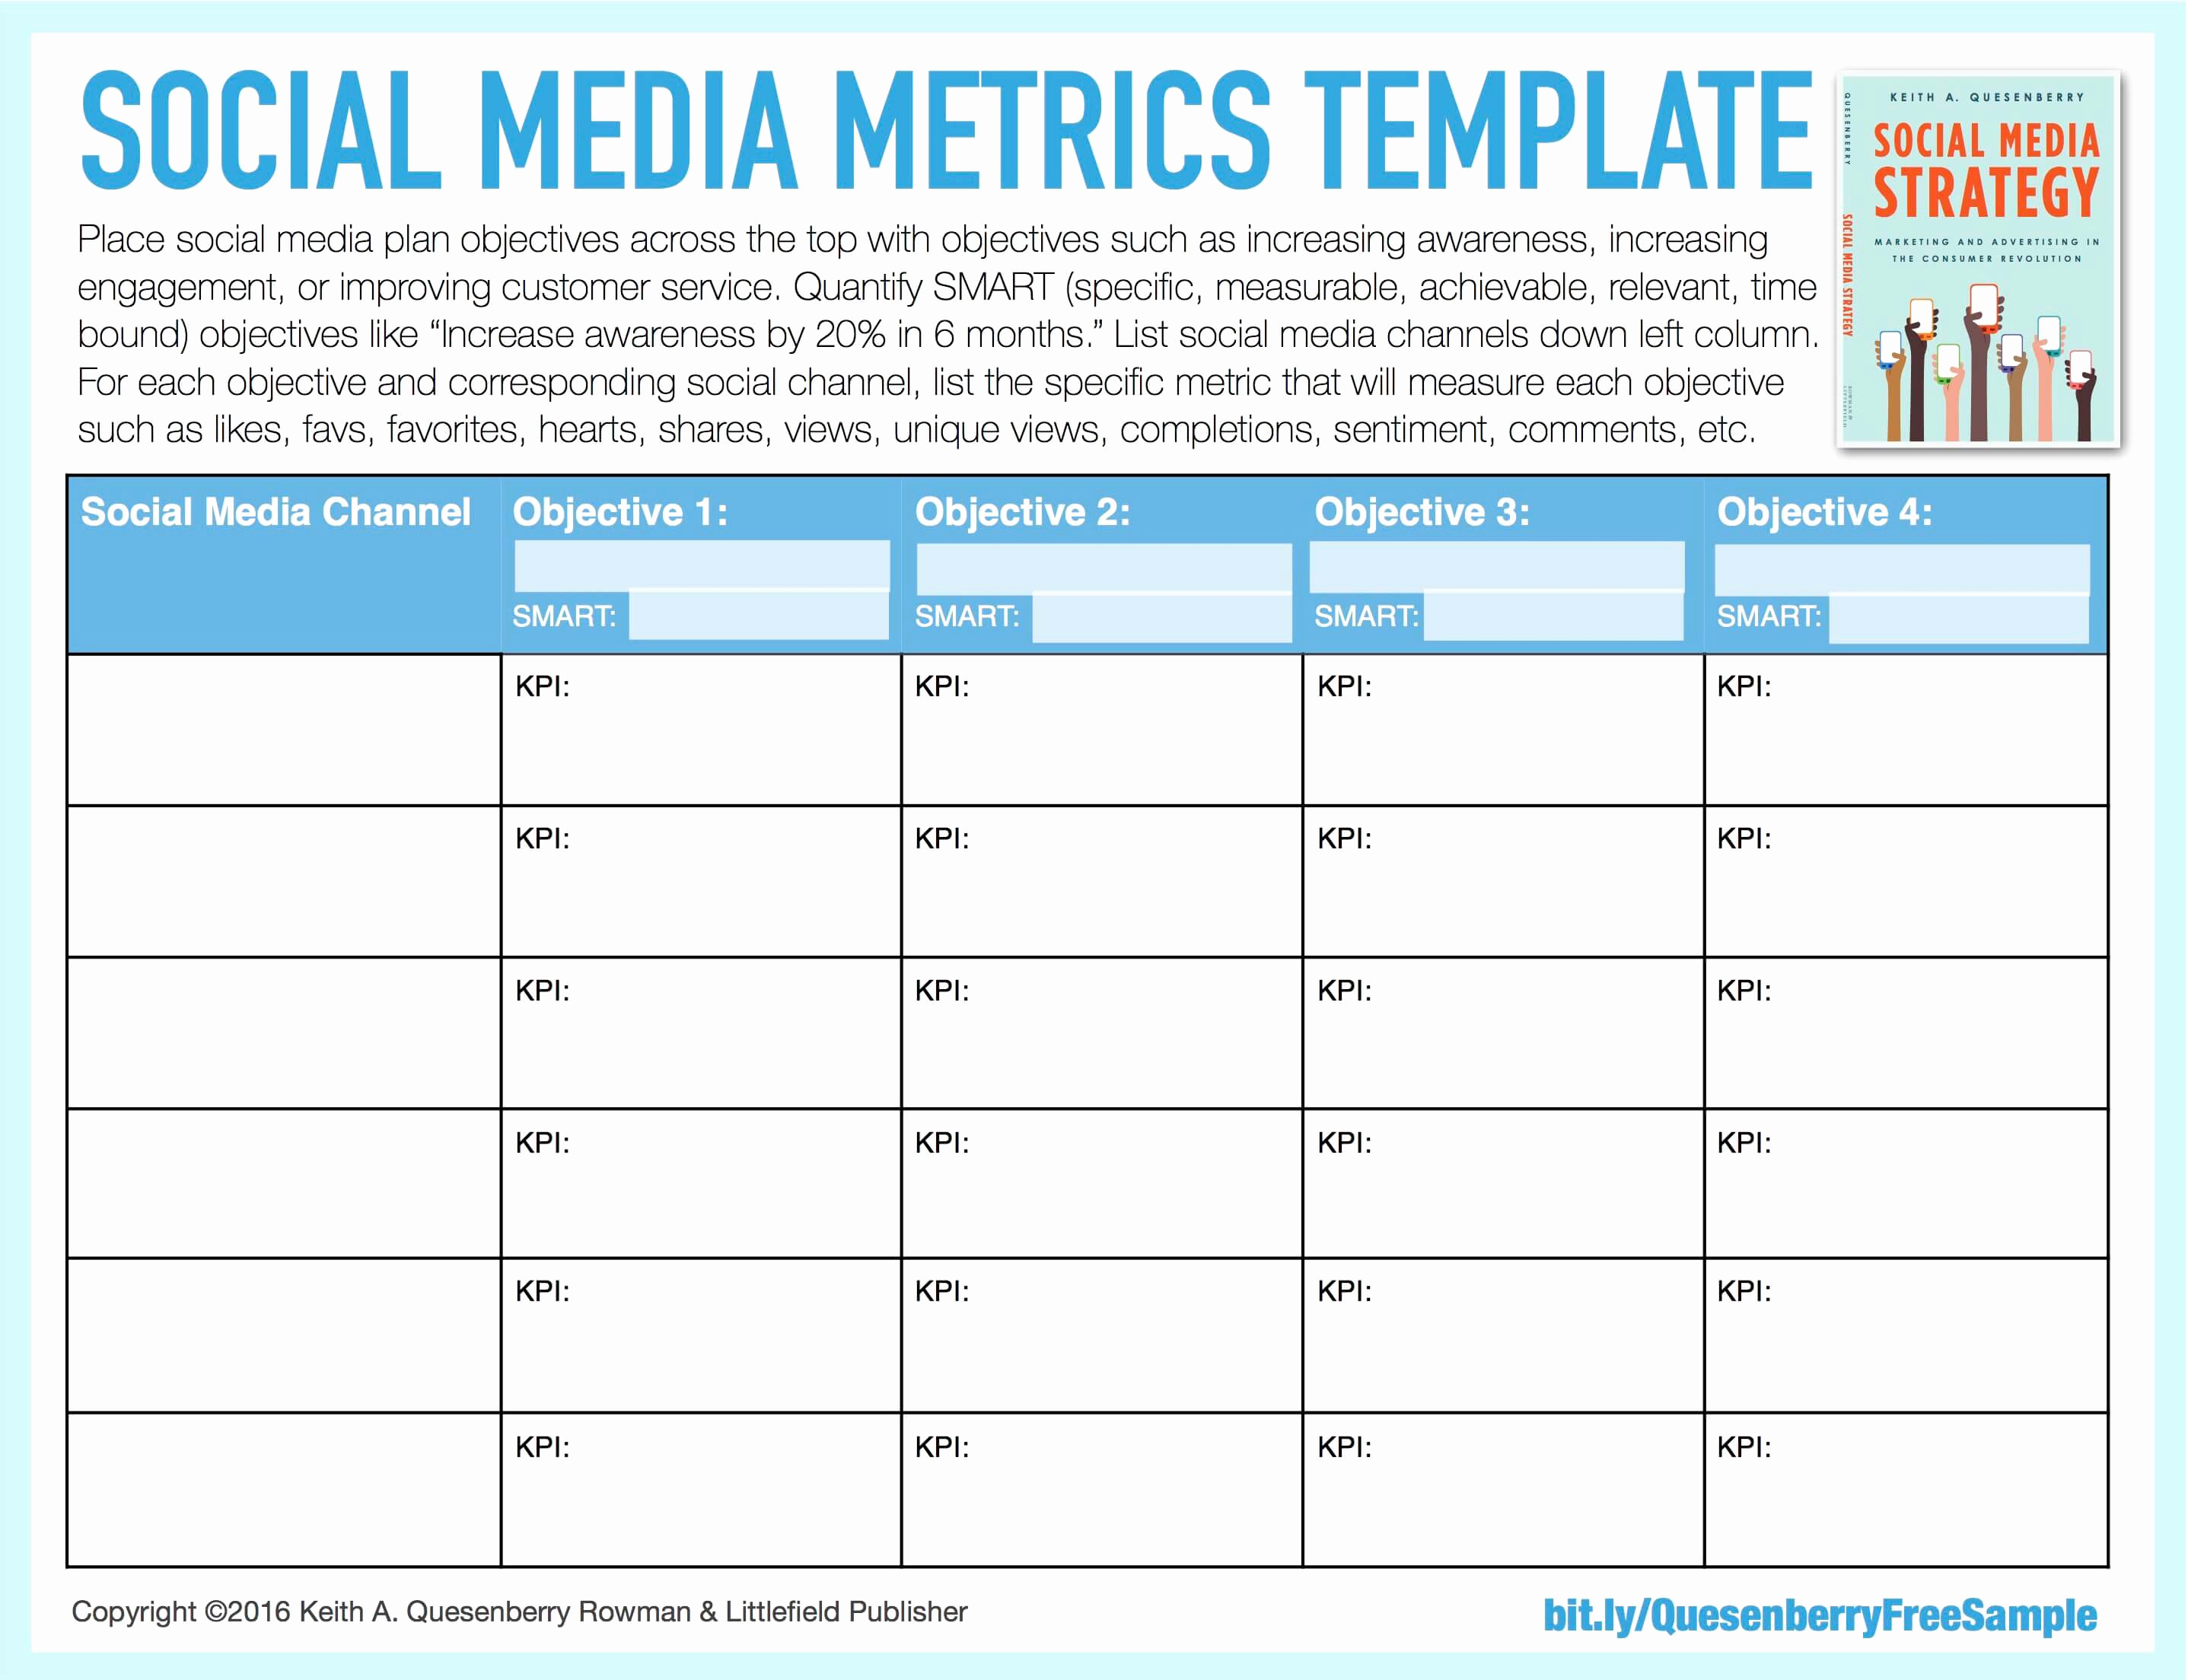 Social Media Strategy Example Awesome social Media Templates Keith A Quesenberry